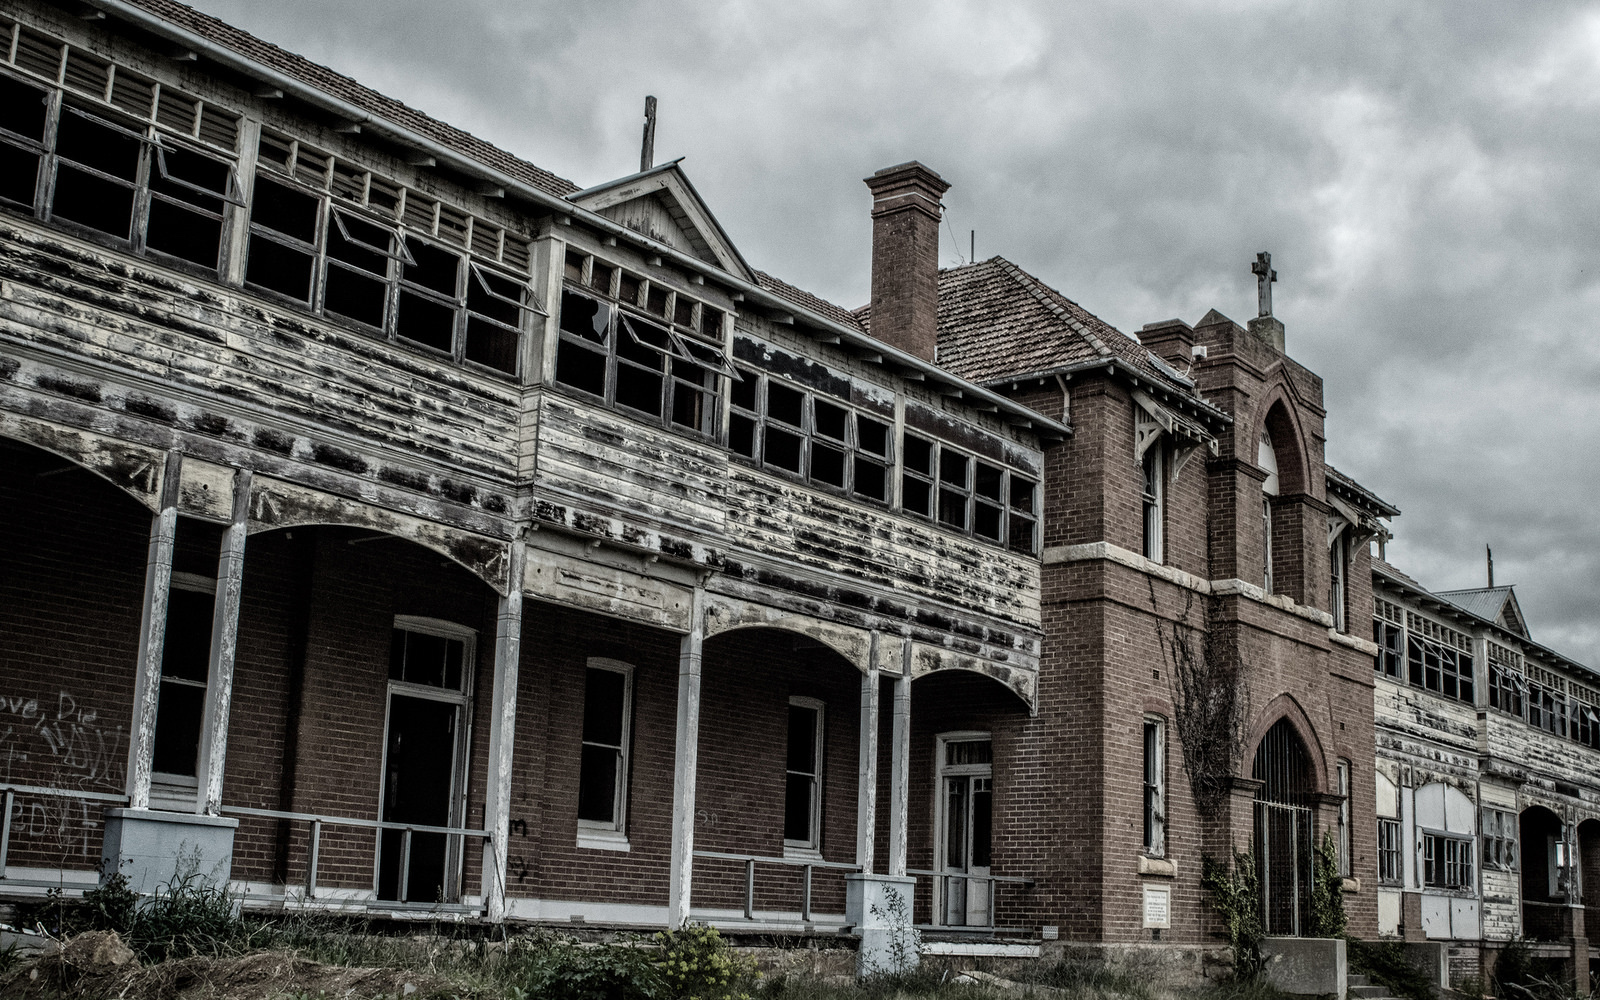 The Top 10 Most Haunted Places in Australia